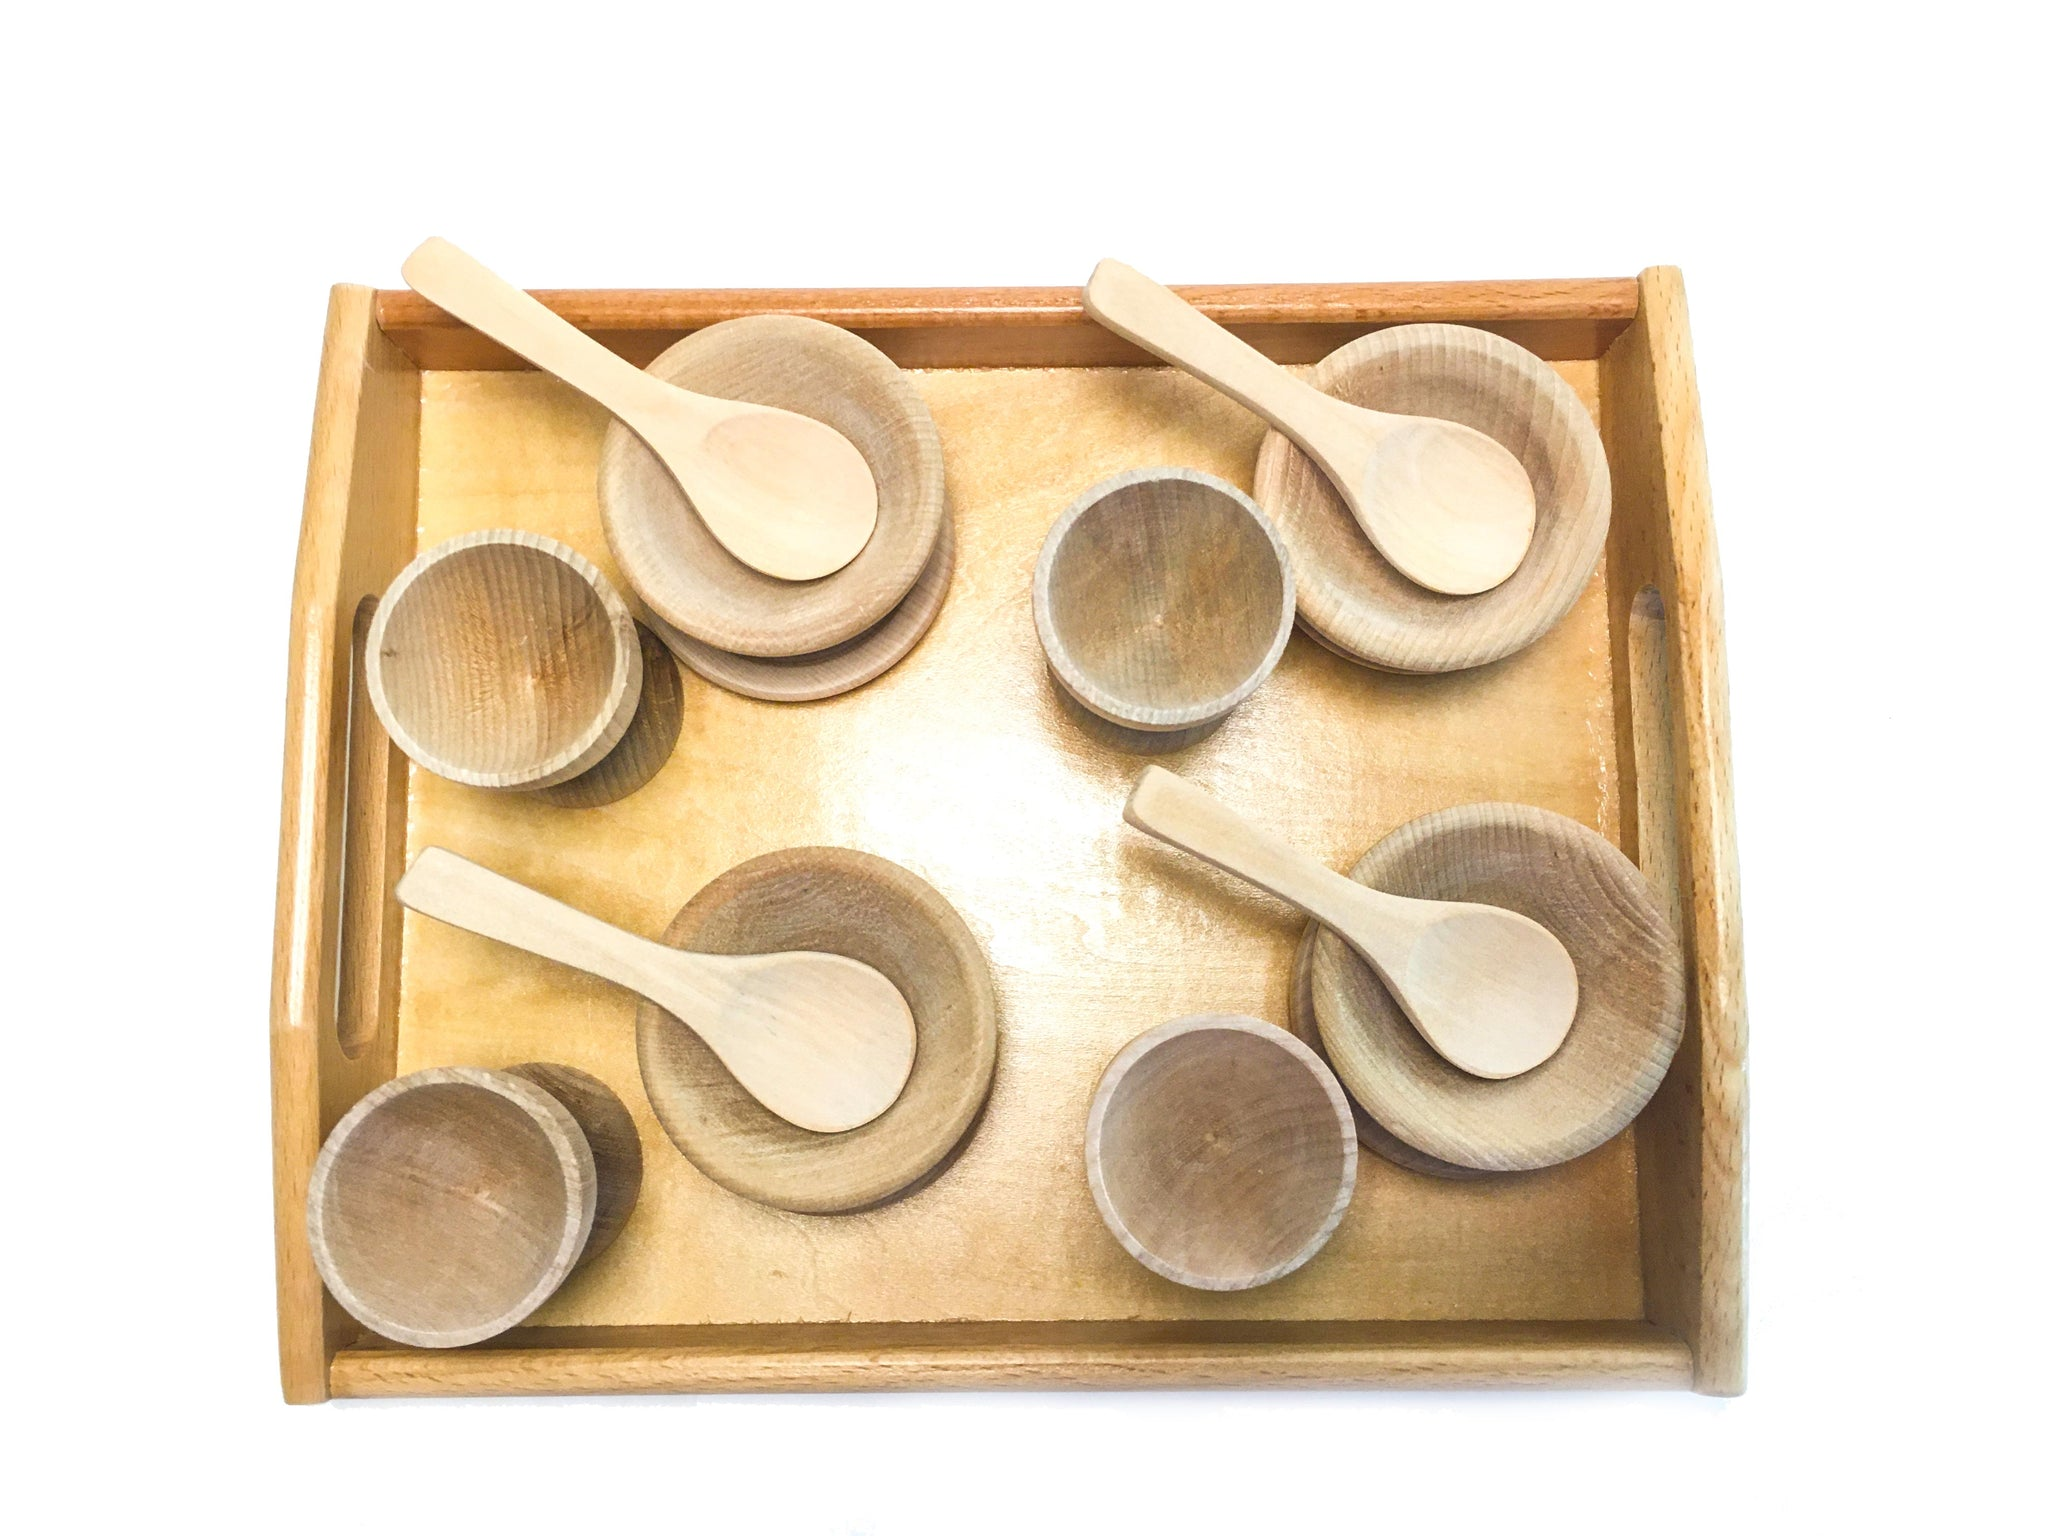 Montessori Toys For Toddlers Wooden Play Kitchen Tools Dishes Cups Plates And Spoons Set Of 16 Simplytoplay